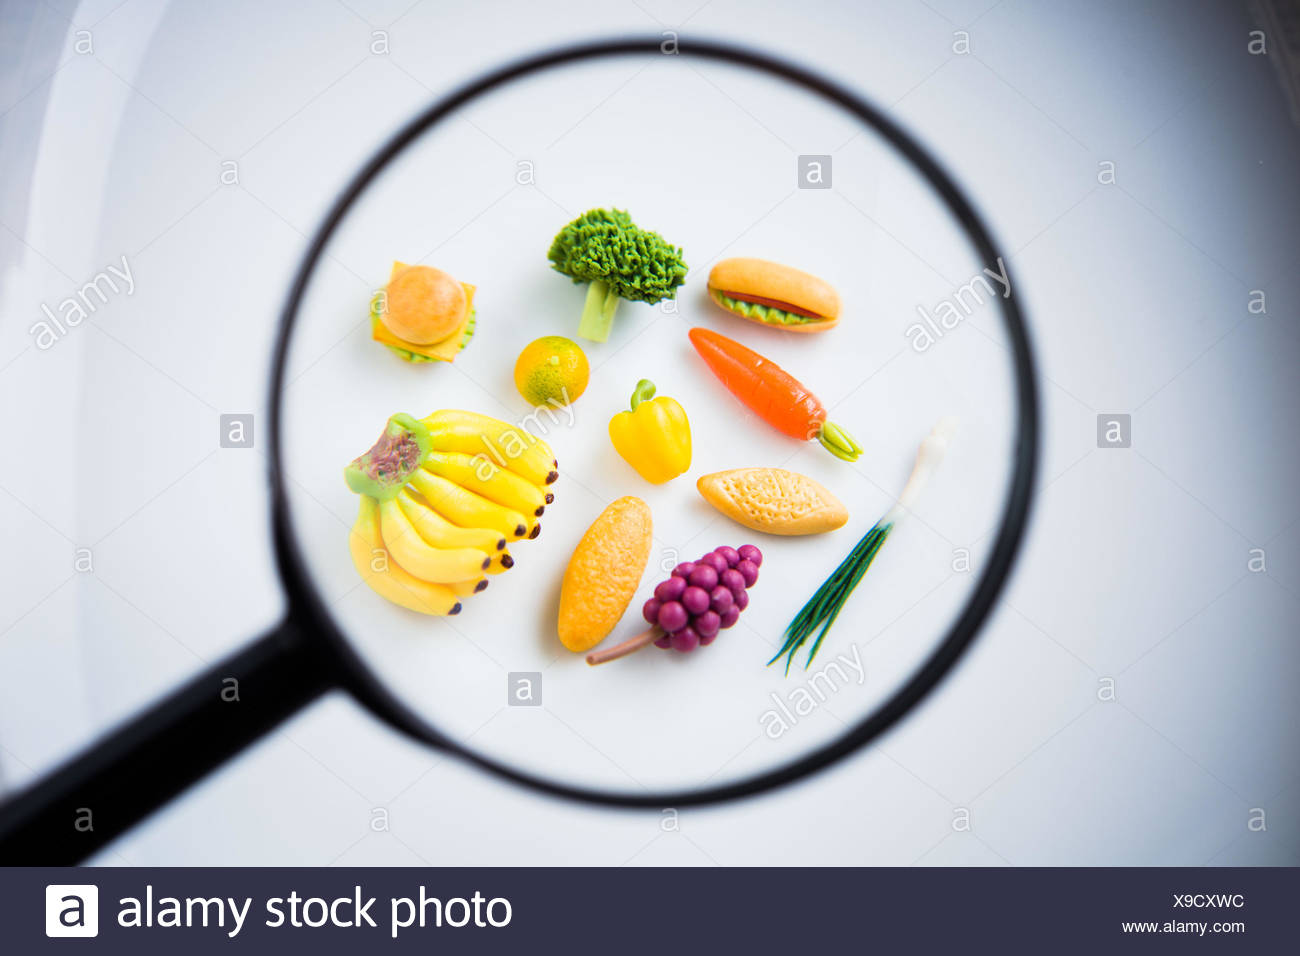 Food and magnifying glass. - Stock Image